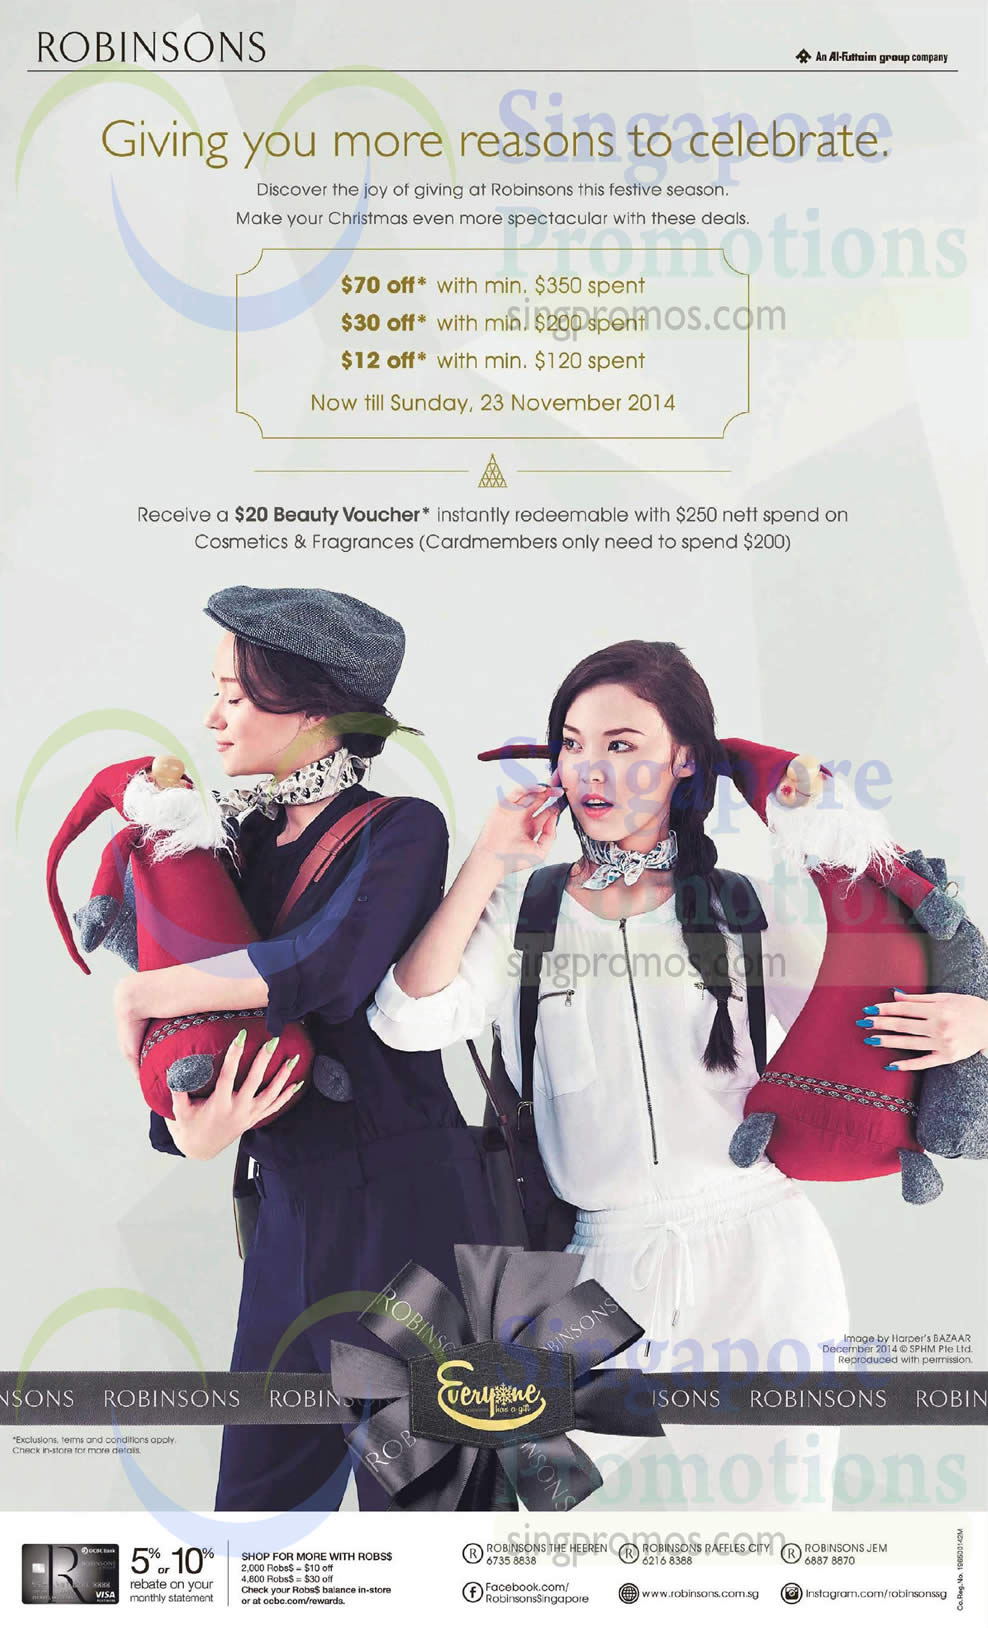 21 Nov Robinsons 20 Dollar Beauty Voucher with 250 Dollar Purchase